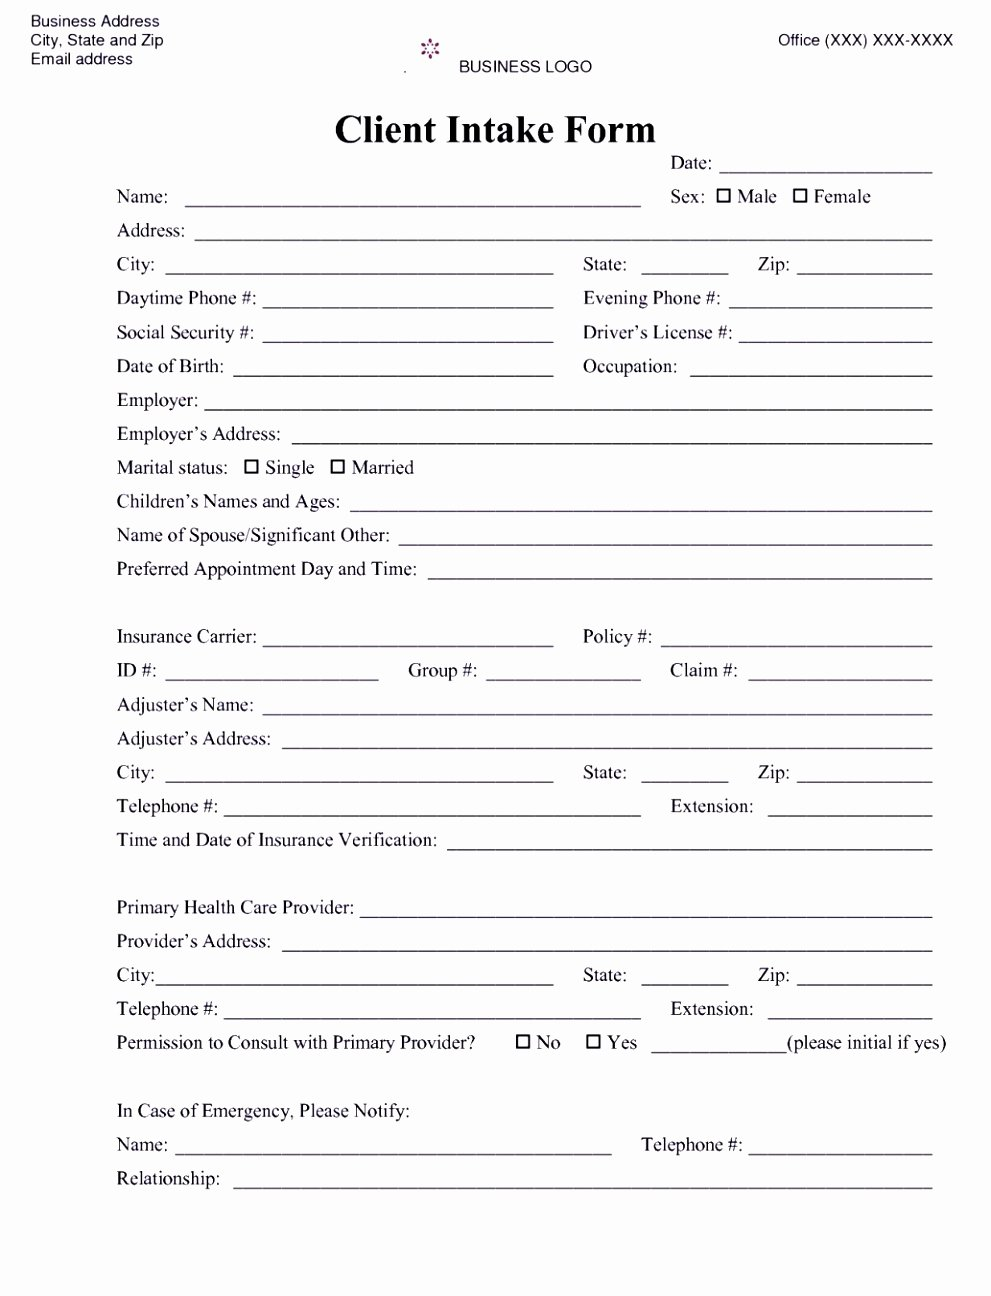 6 Counselling Referral form Template Uyefi